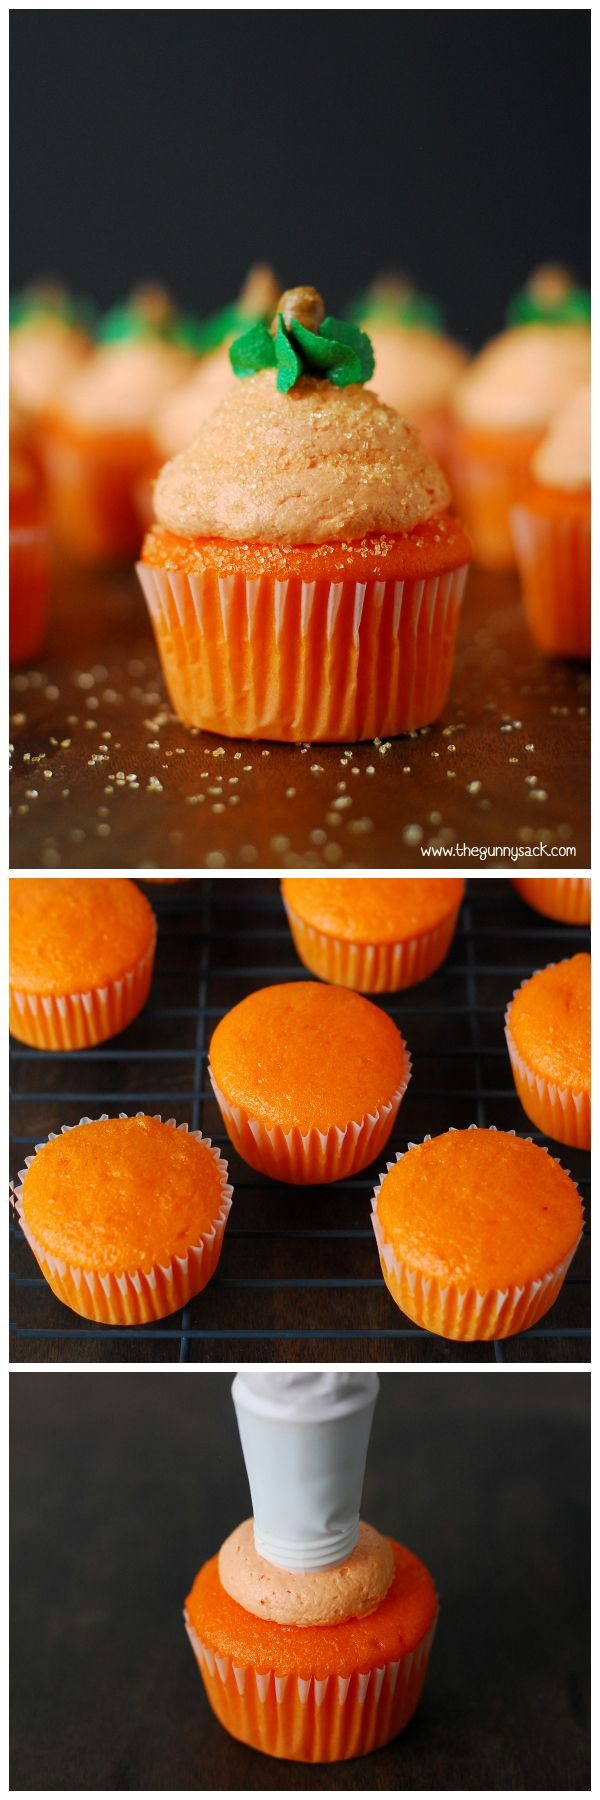 These Pumpkin Cupcakes are frosted with marshmallow buttercream in the shape of a pumpkin! They are perfect for Halloween and for fall parties!